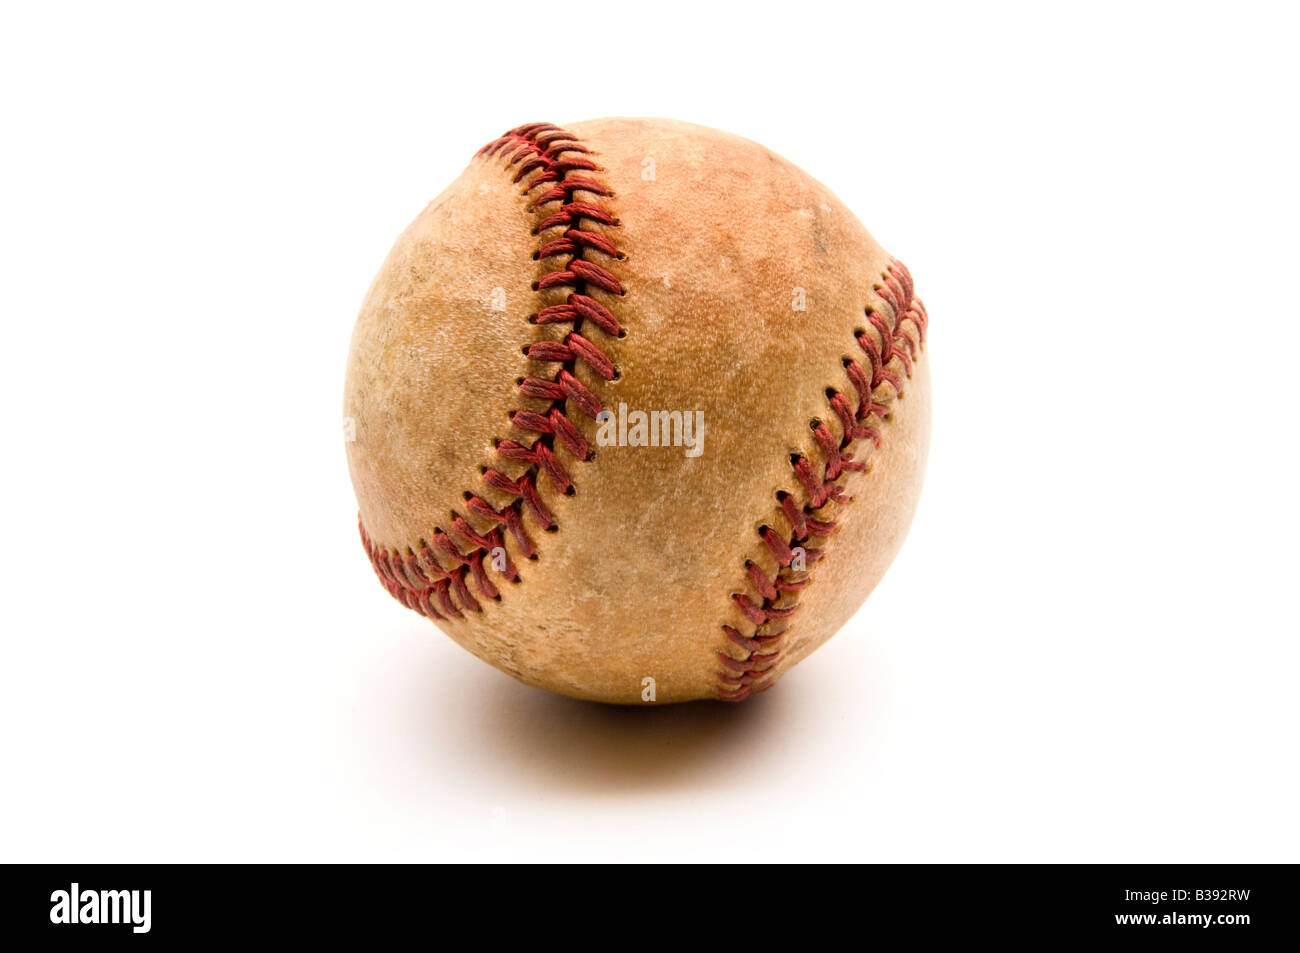 Old baseball on white with shadow - Stock Image